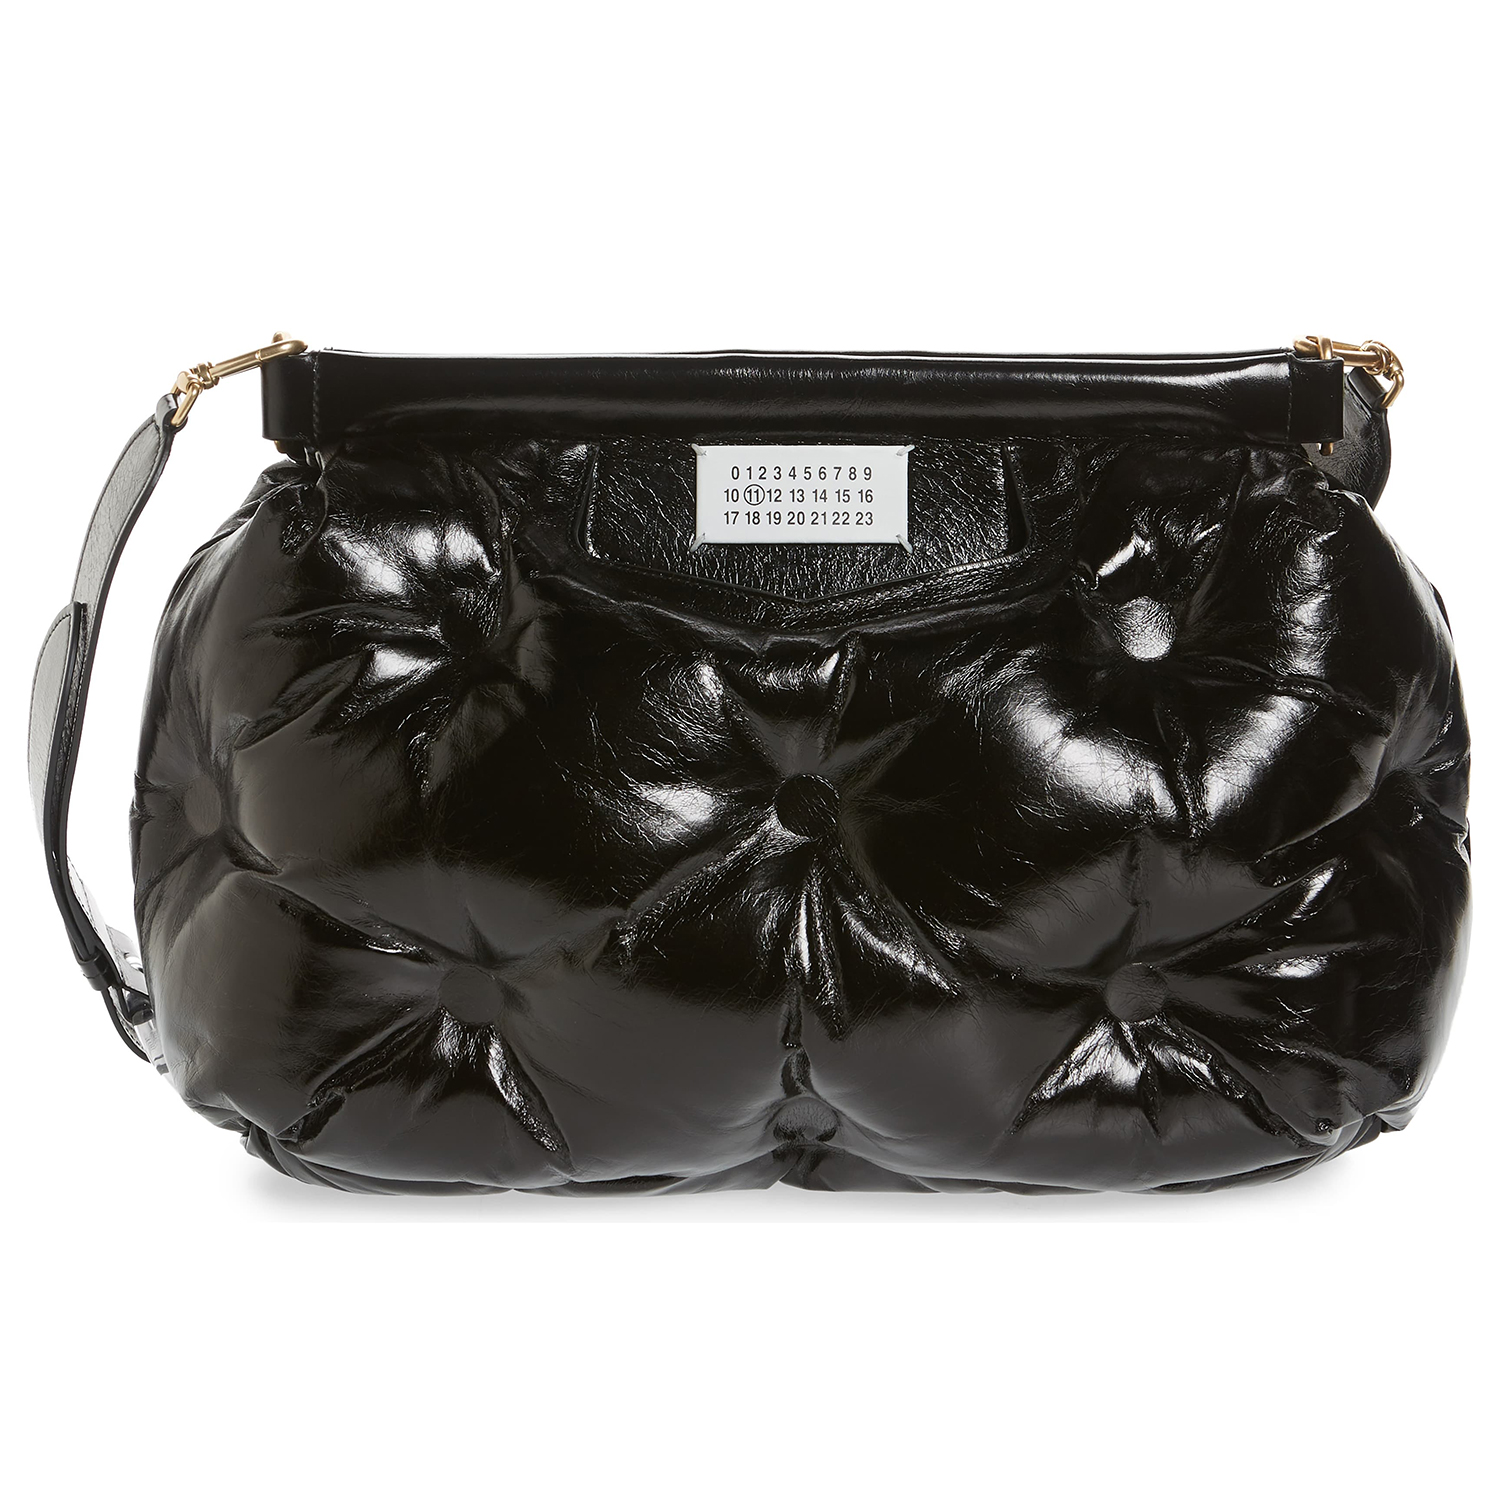 Maison Margiela Glam Slam Leather Convertible Crossbody Bag